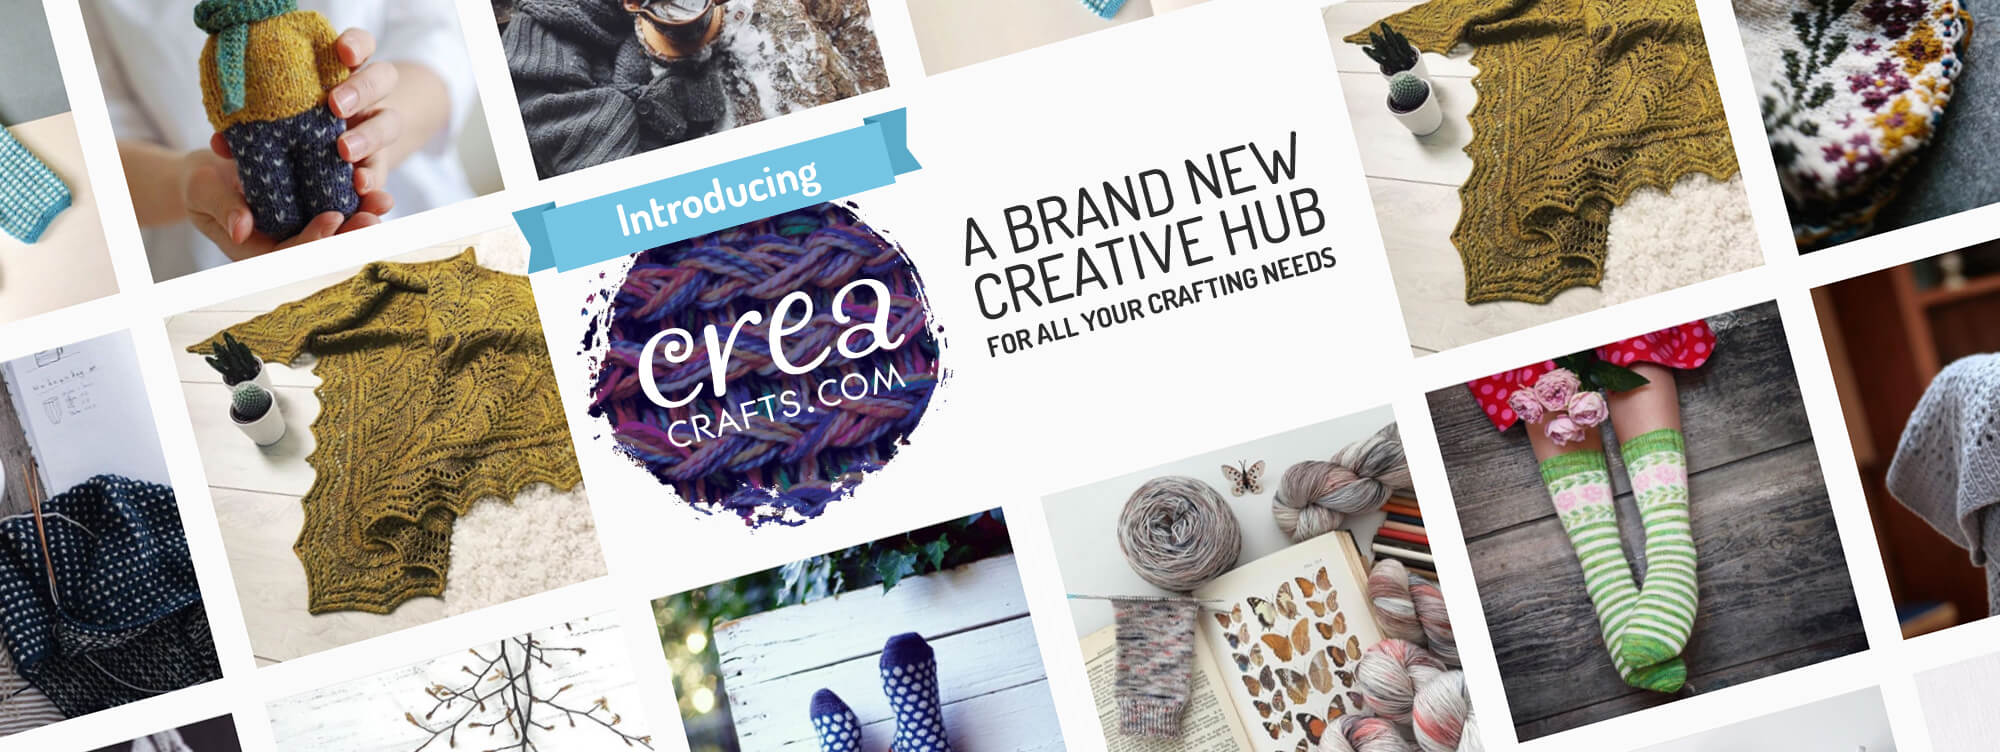 Introducing creacrafts.com - A brand new creative hub for all your craft